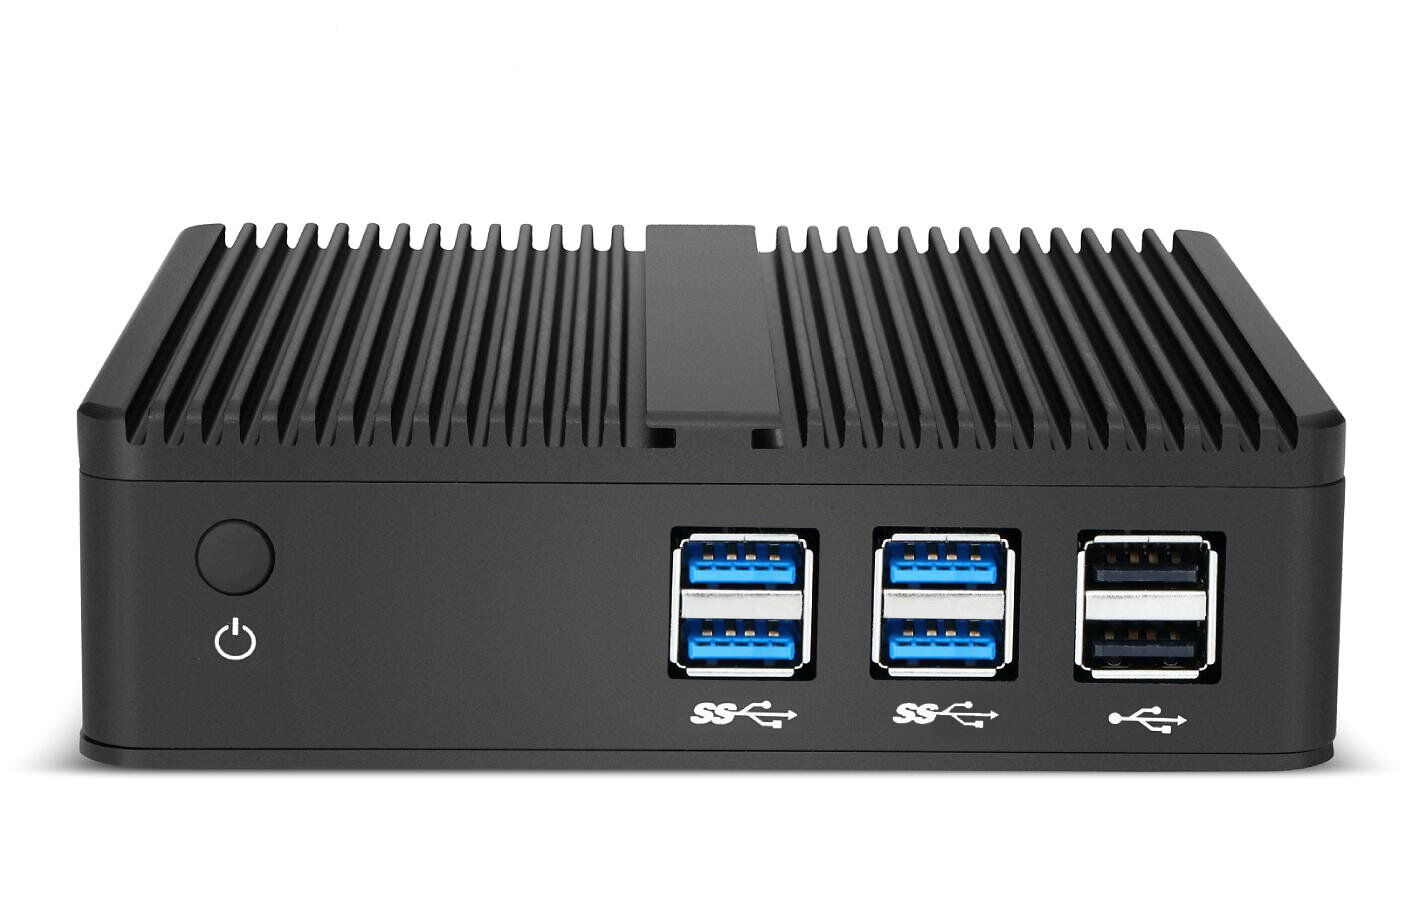 XCY X30 Mini PC Intel Core I7-4500U Barebone 1.8GHz Intel HD Graphics 4200 Windows 10 Dual Core Fanless Mini Desktop PC HDMI VGA WiFi Nettop HTPC